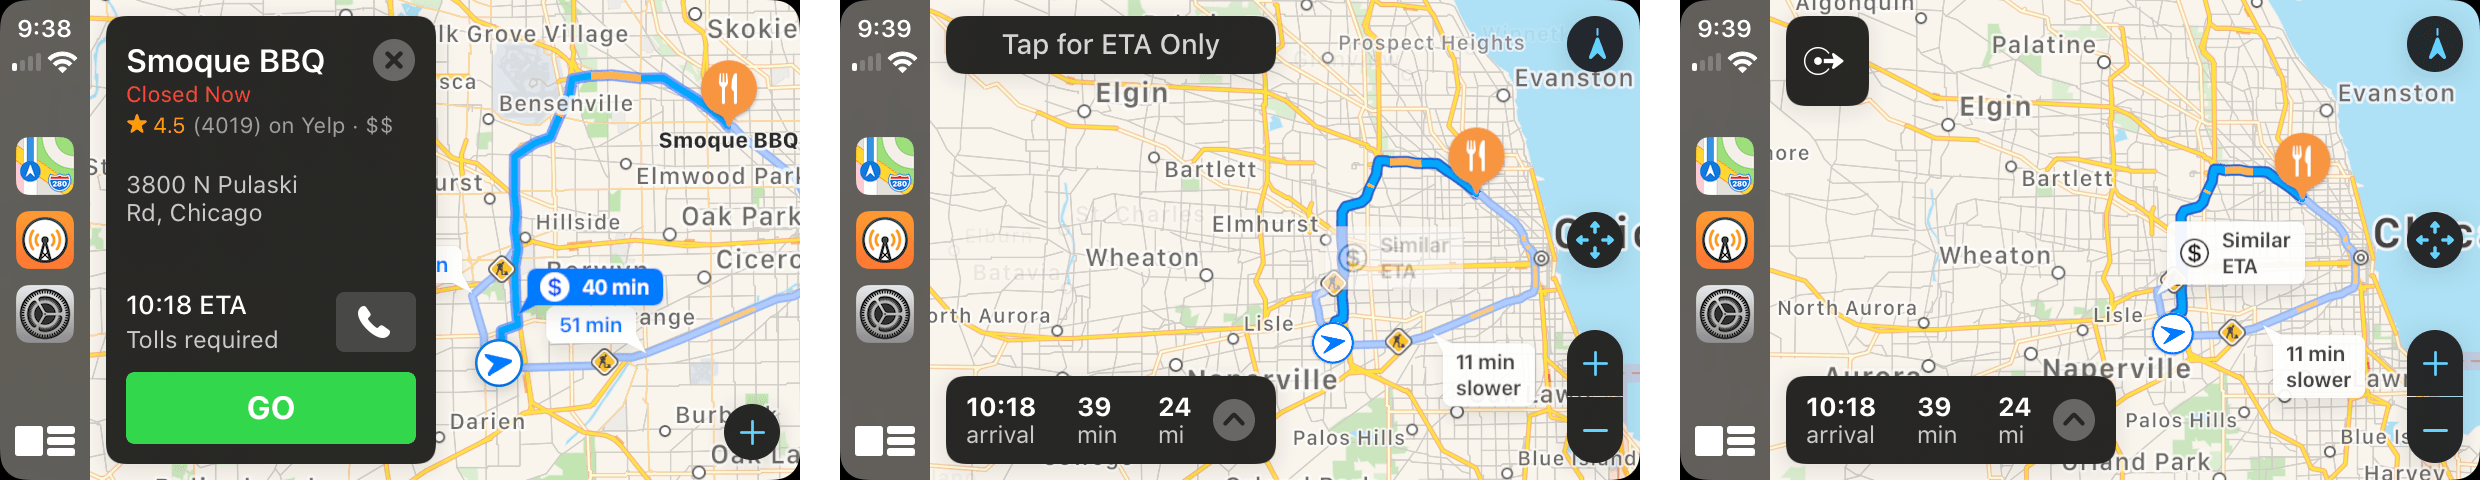 Tap 'Go' to start navigating and switch to ETA only mode by tapping the button that appears when you hit Go or tapping the turn-by-turn directions.